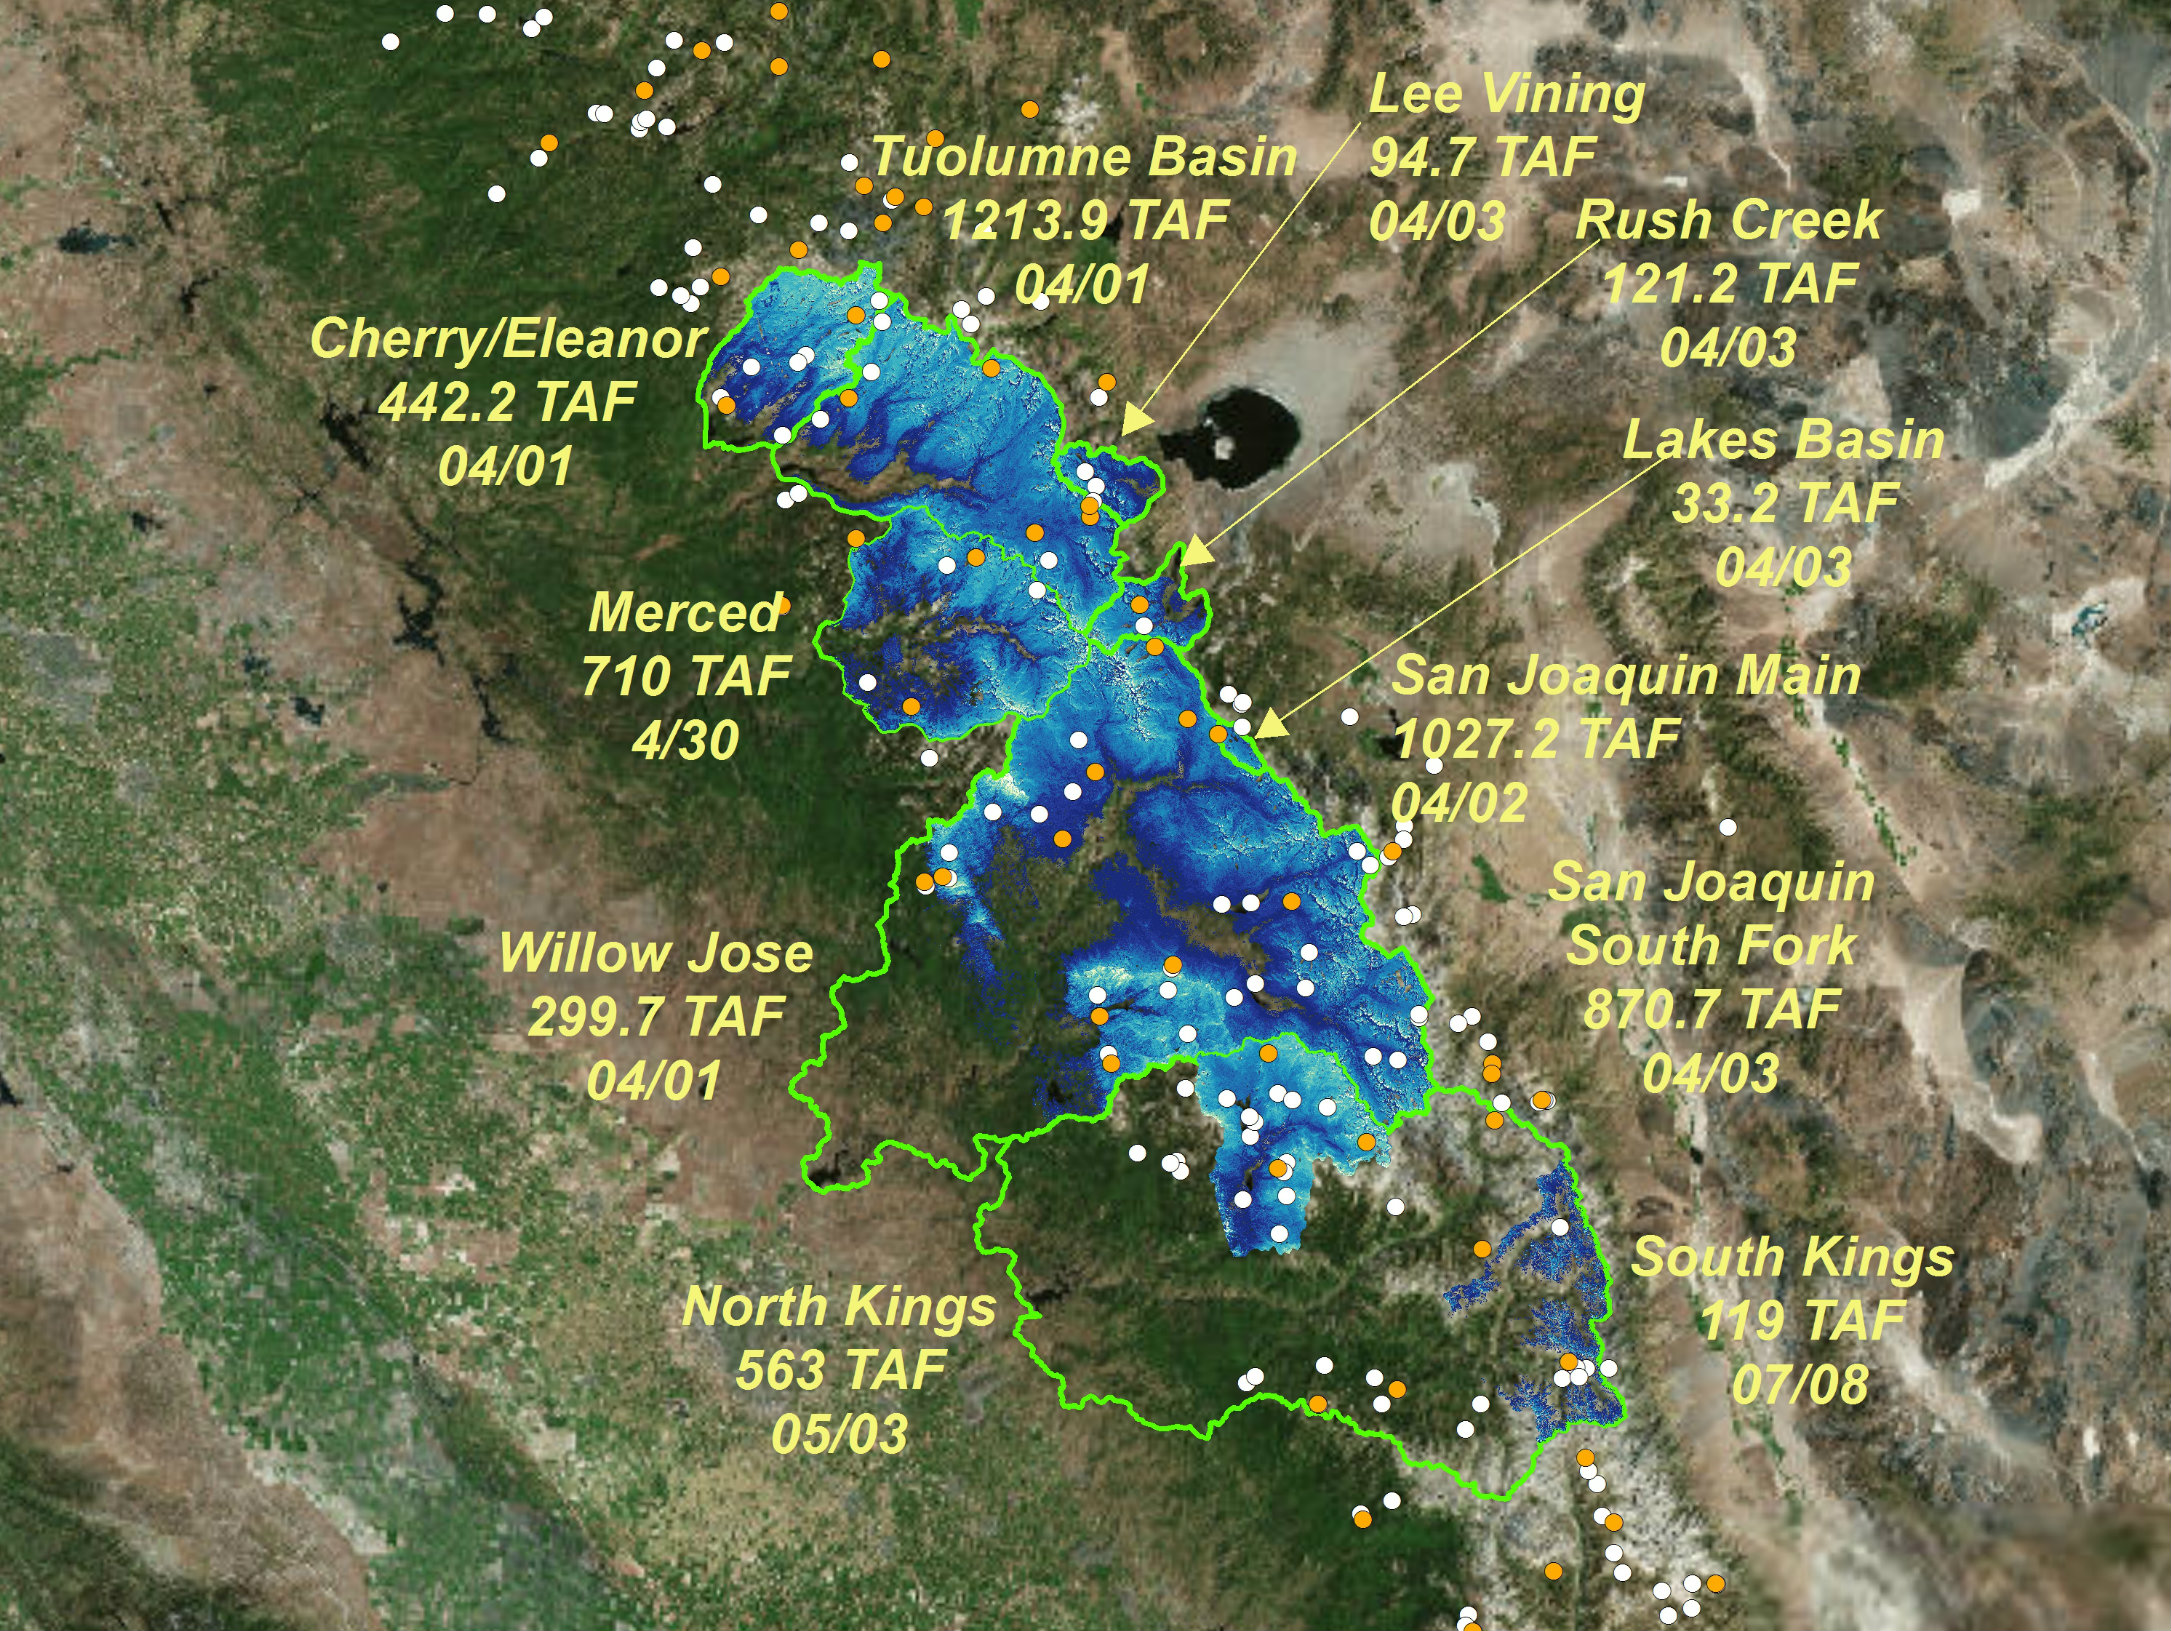 NASA's Jet Propulsion Laboratory / Courtesy